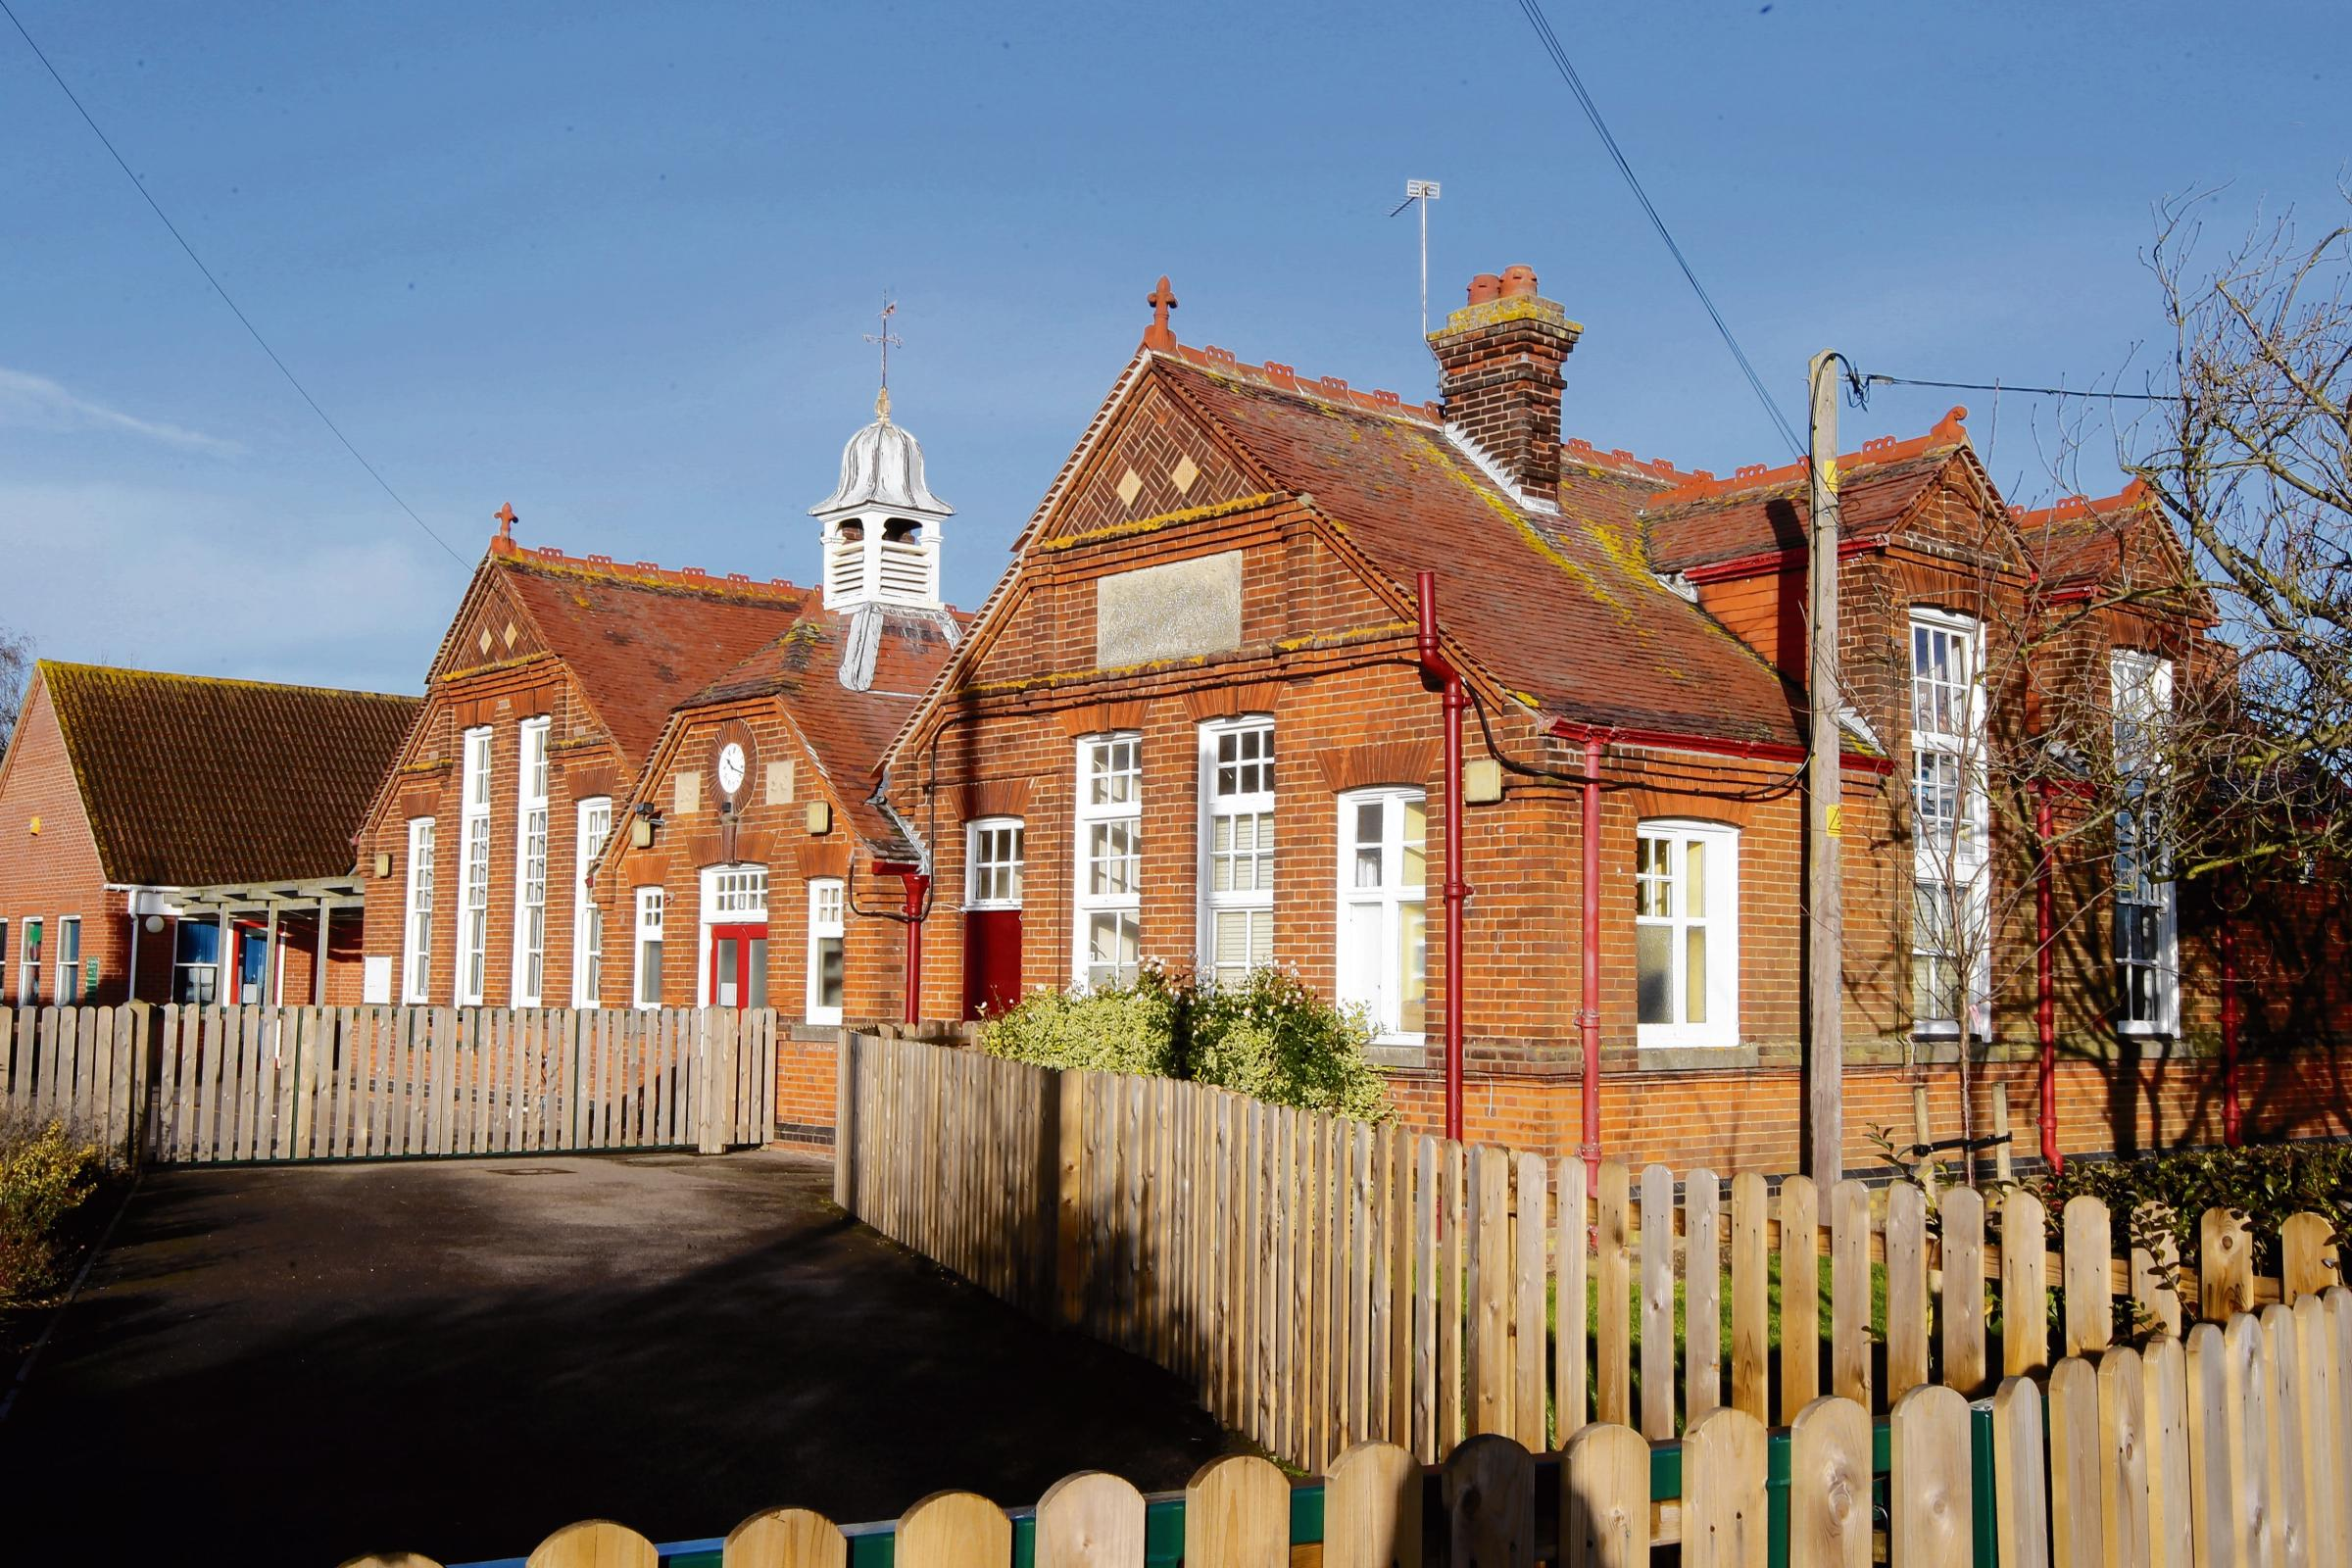 Fete has feast of family fun at Tendring Primary School.